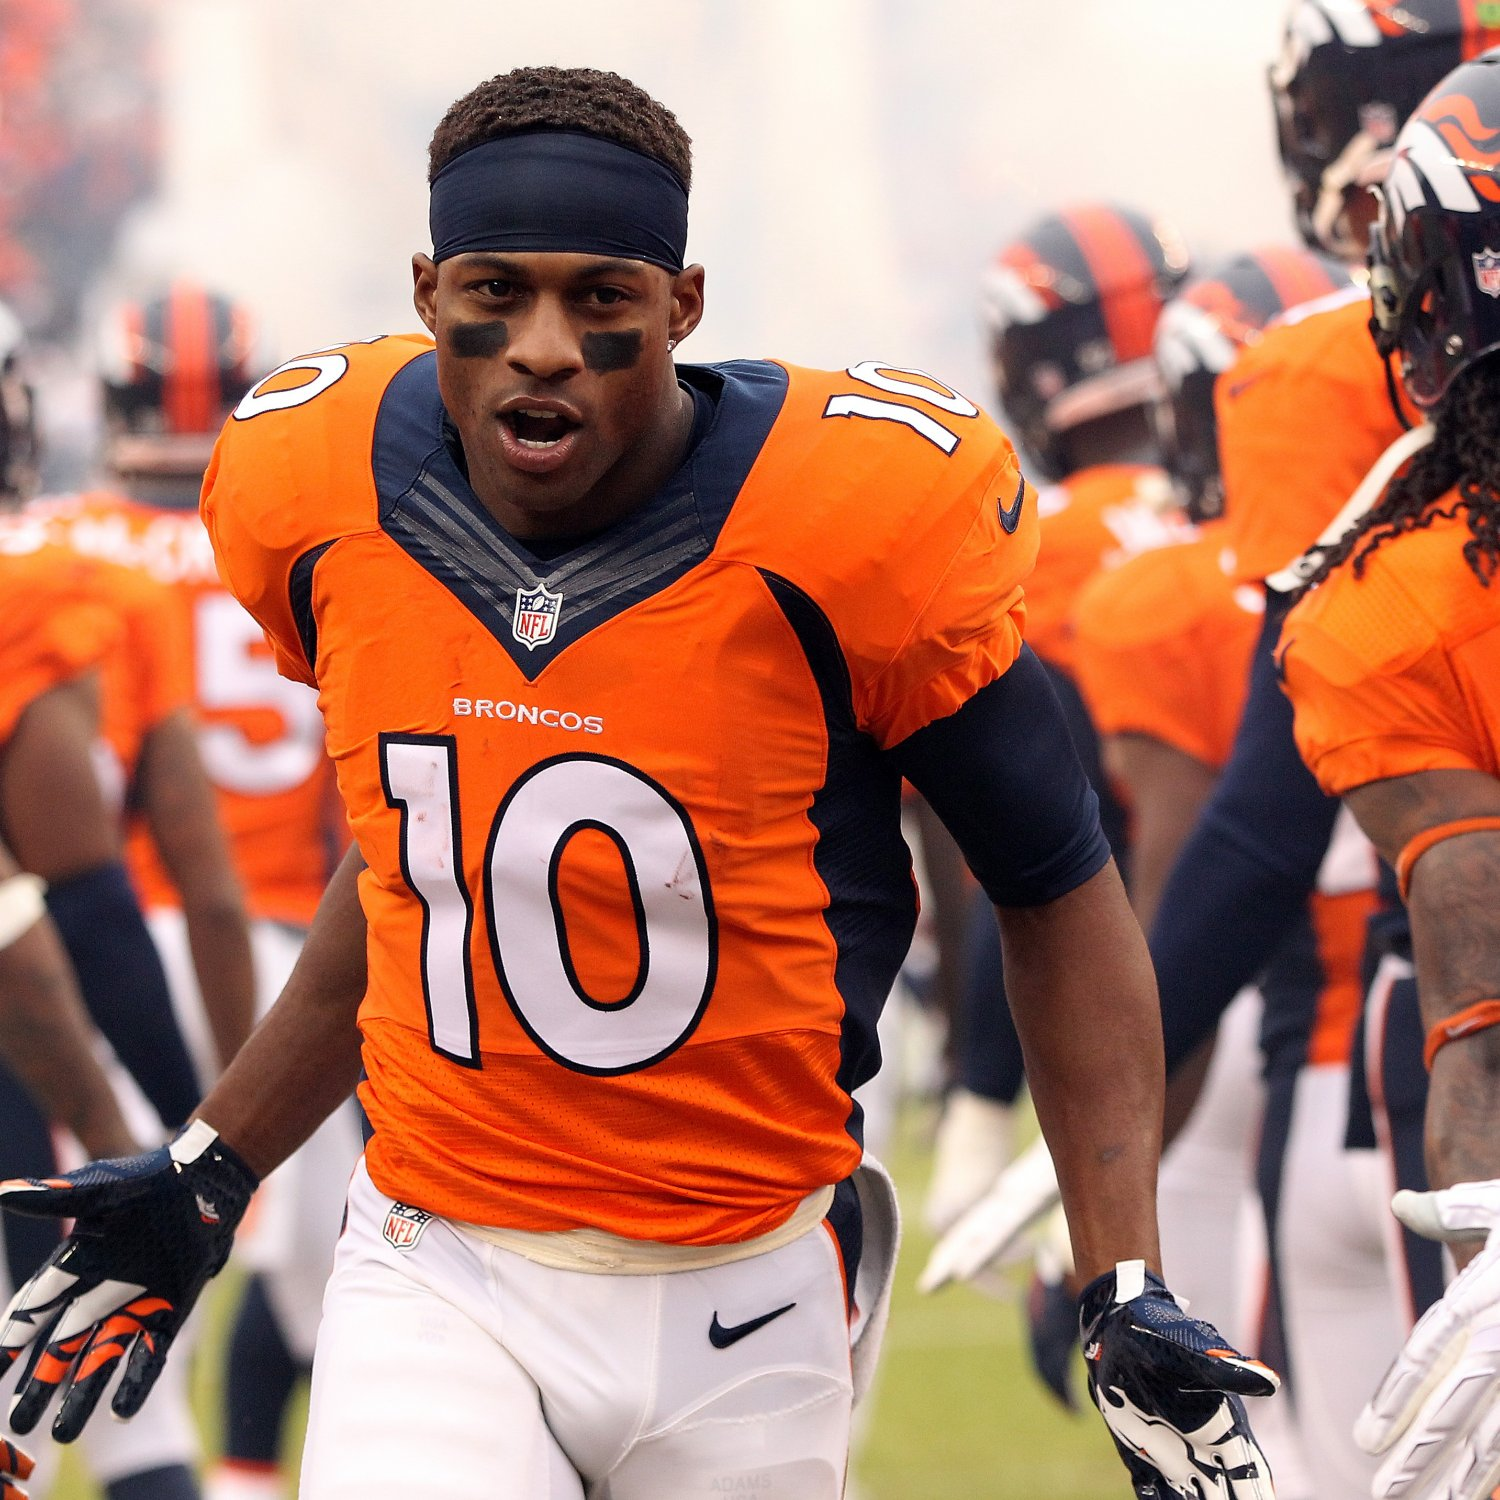 Download Free What Channel Is The Denver Broncos Game On